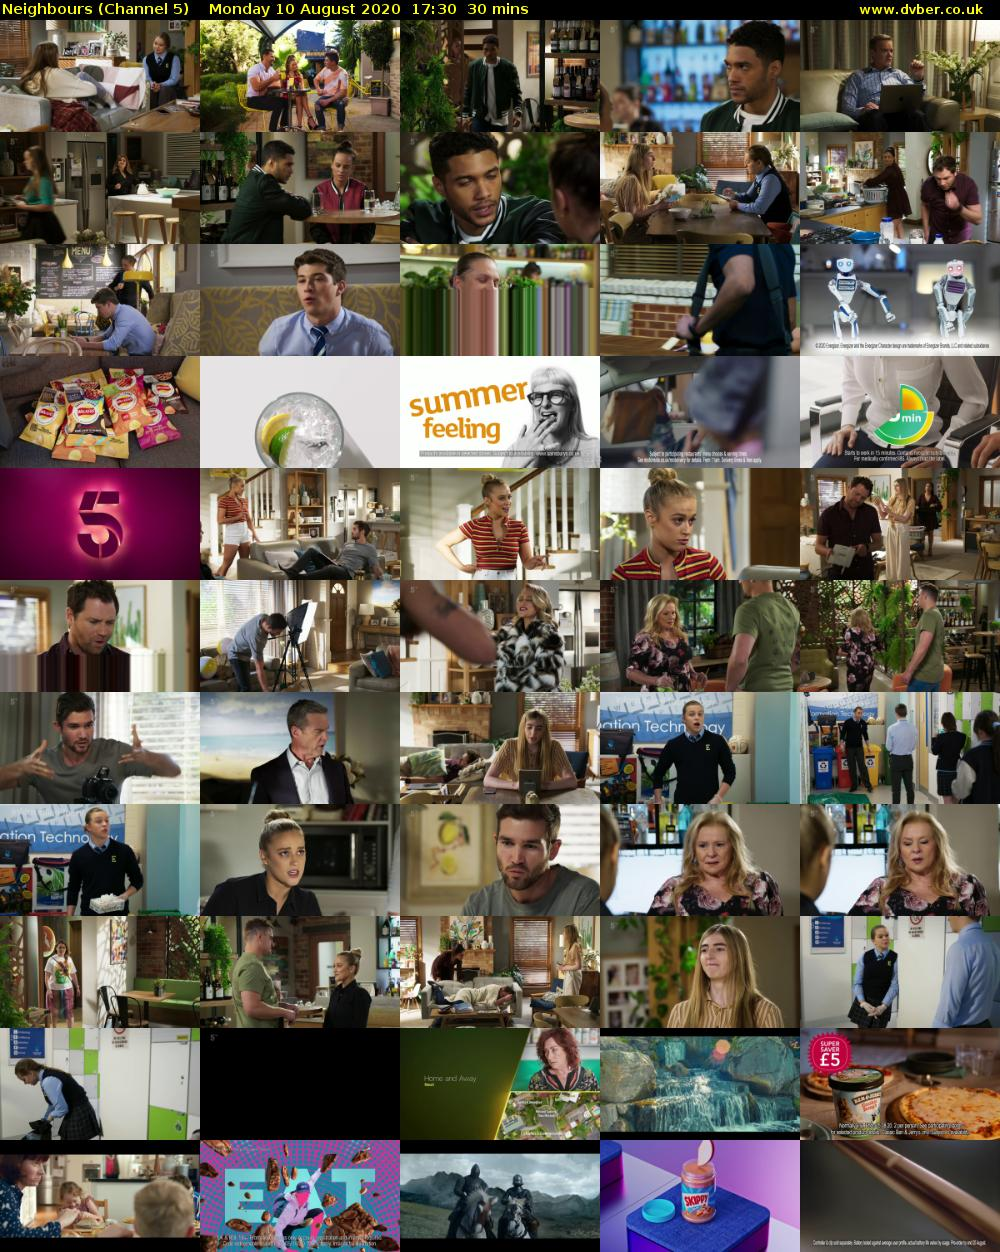 Neighbours (Channel 5) Monday 10 August 2020 17:30 - 18:00